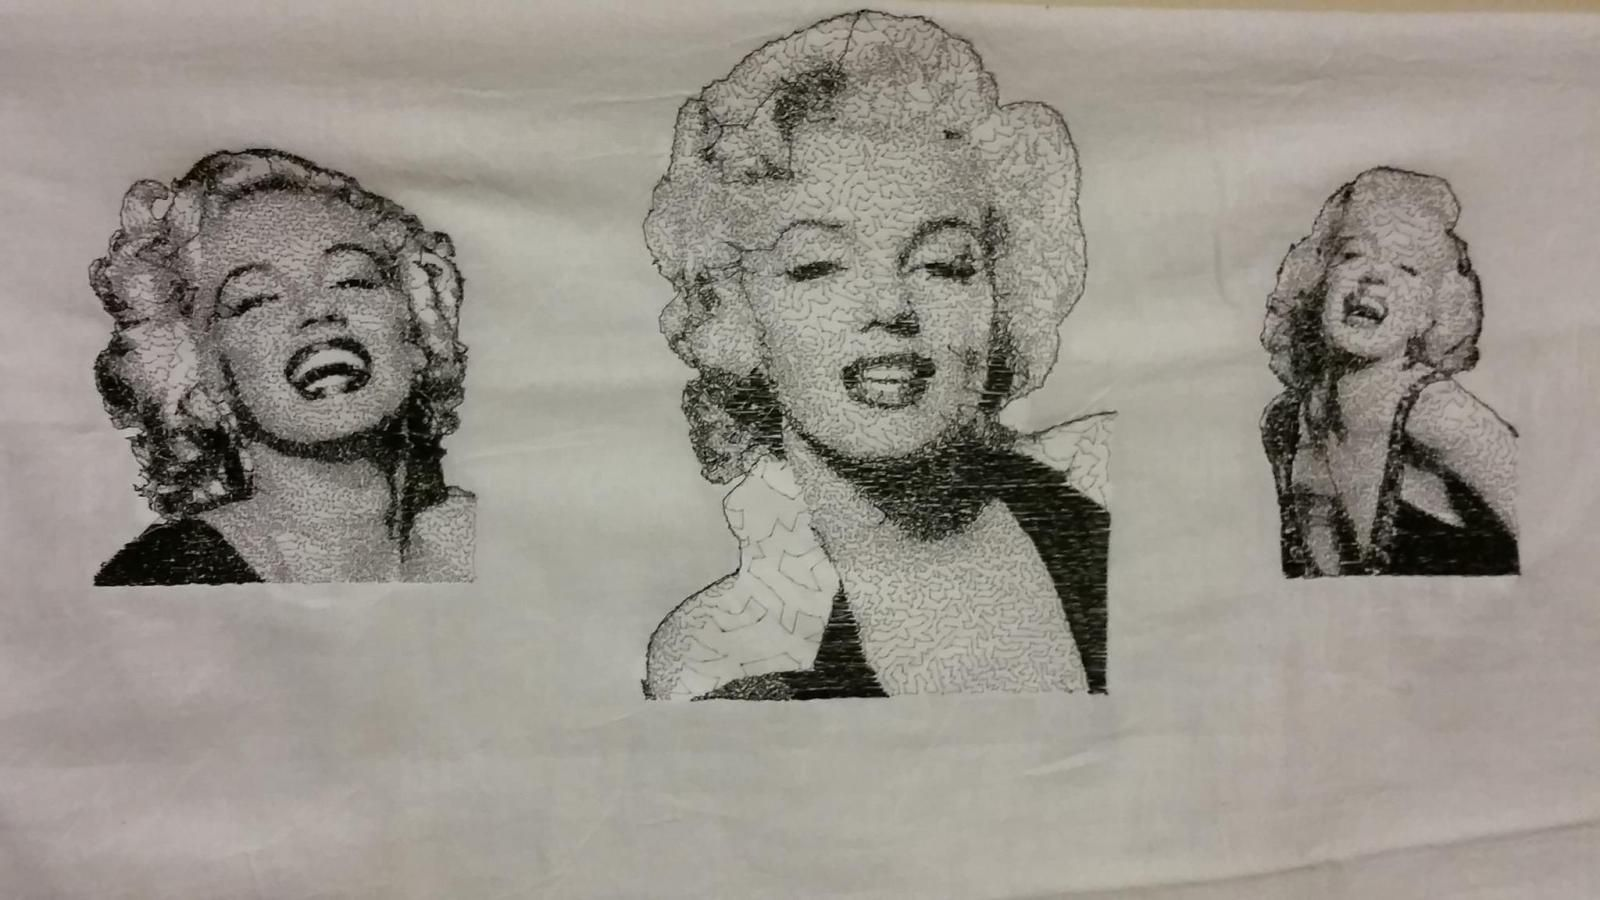 1Marilyn-Monroe embroidery patch